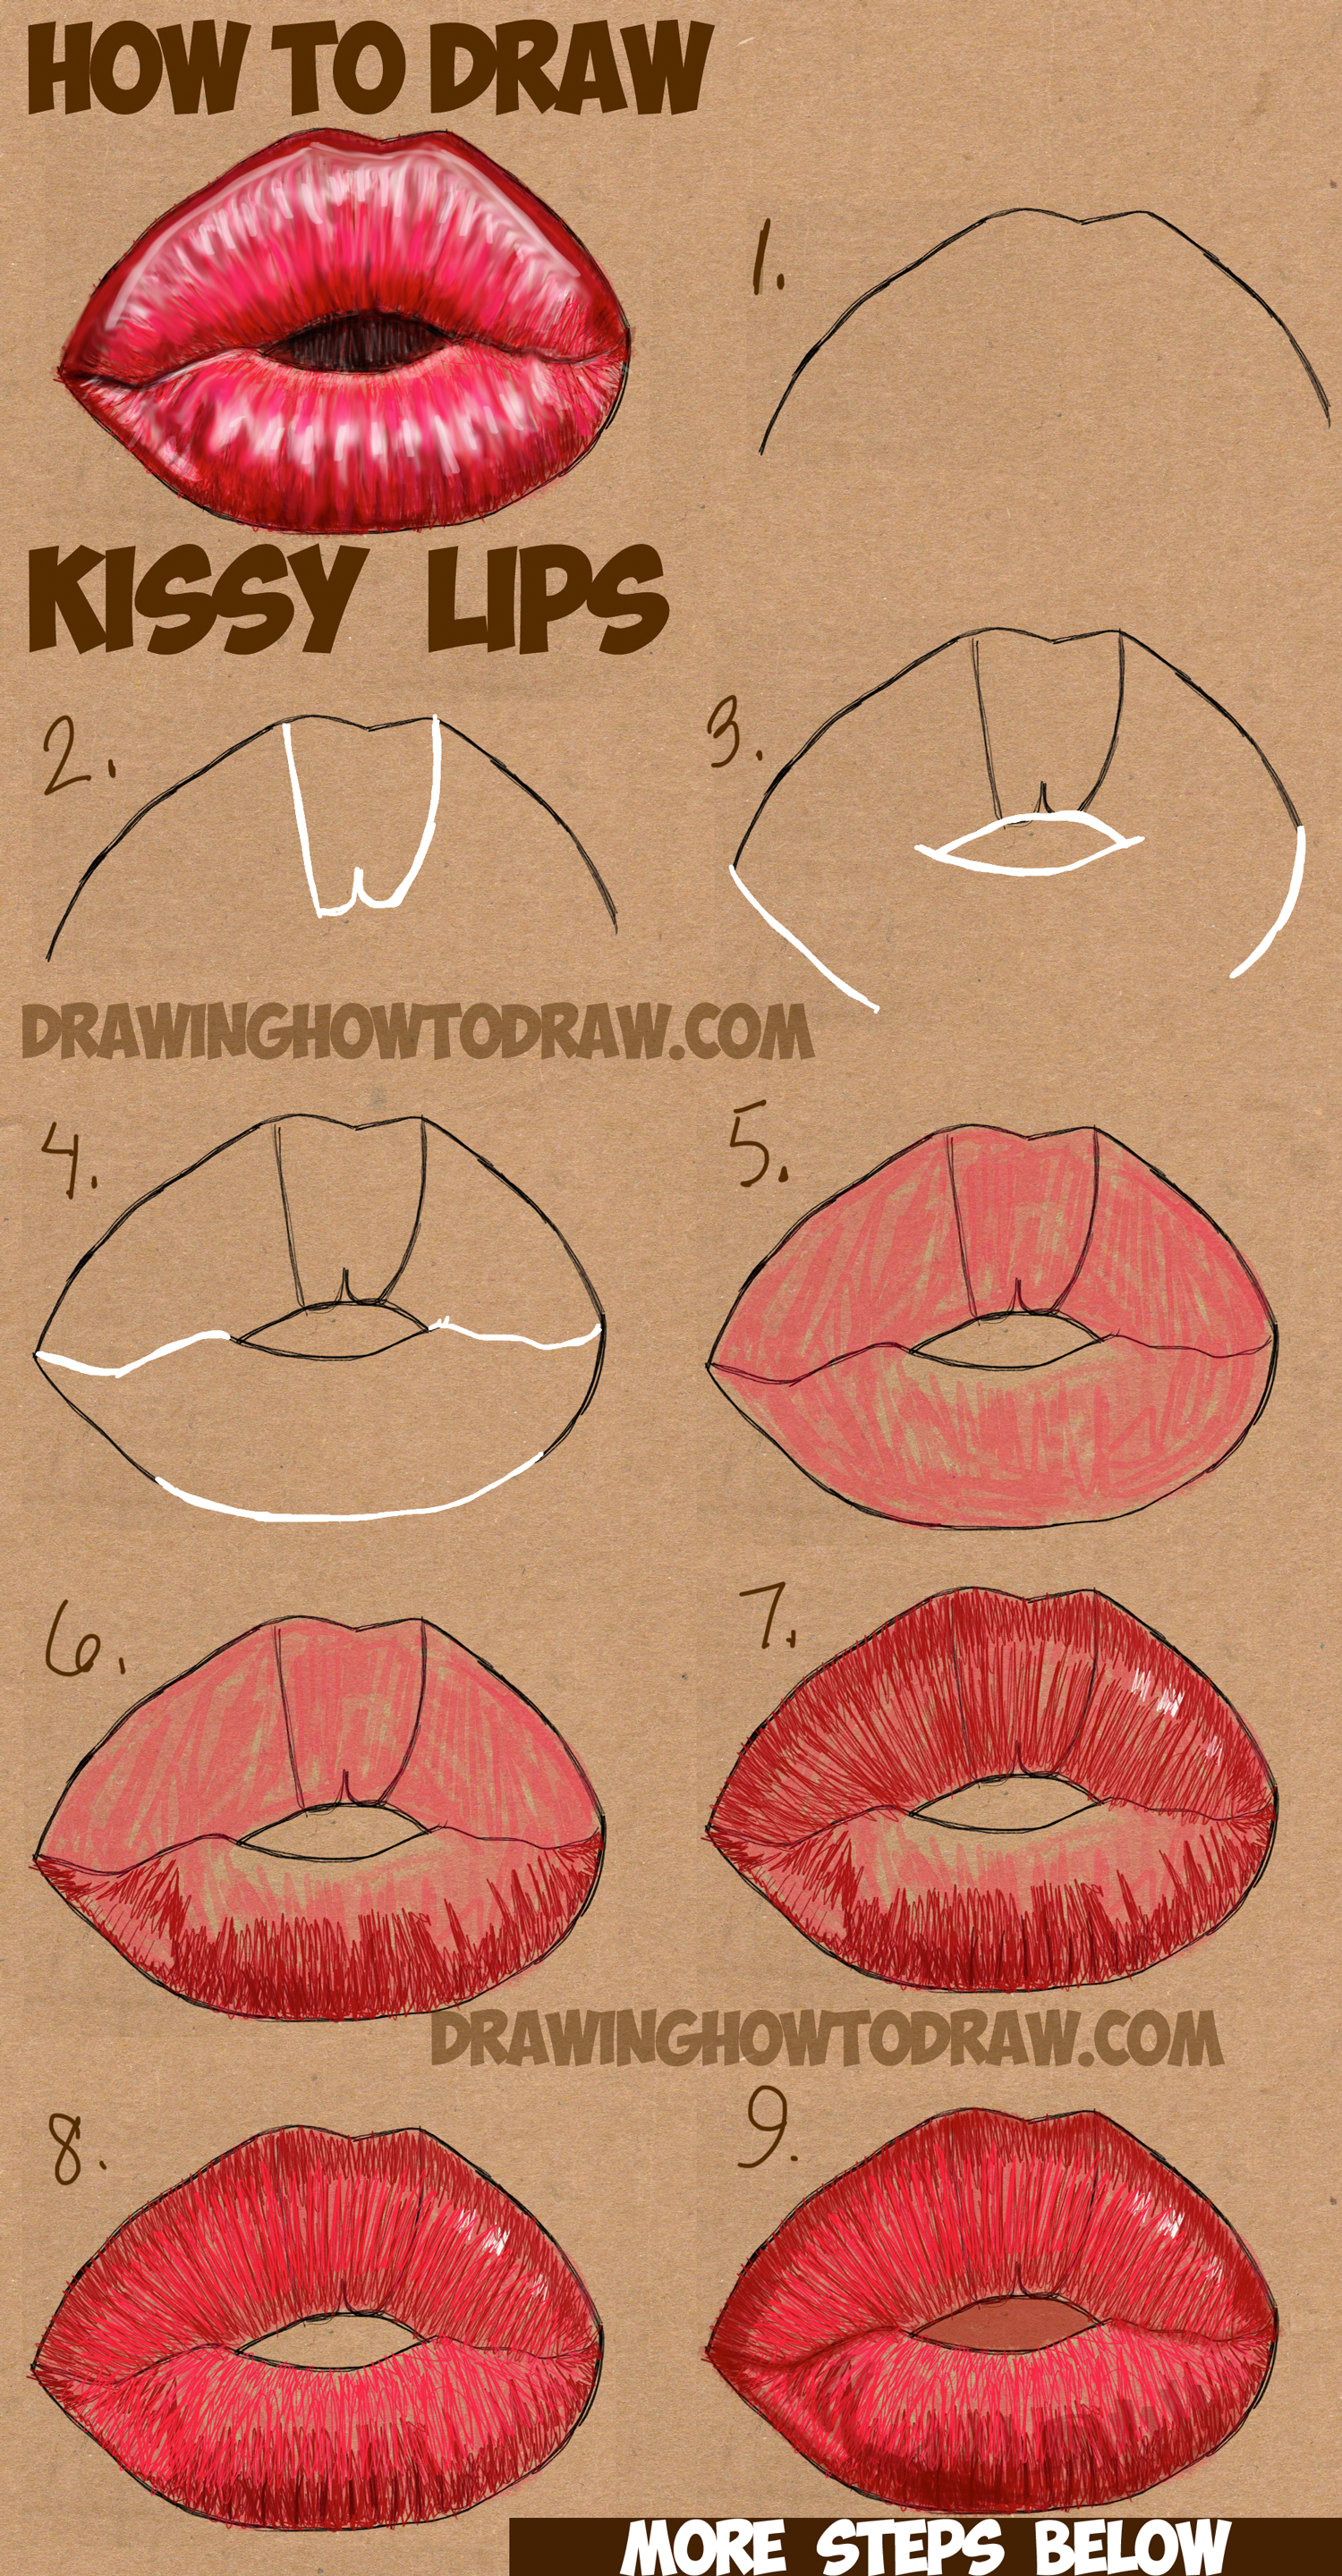 How To Draw Kissy Kissing Puckering Sexy Lips How To Draw Step By Step Drawing Tutorials